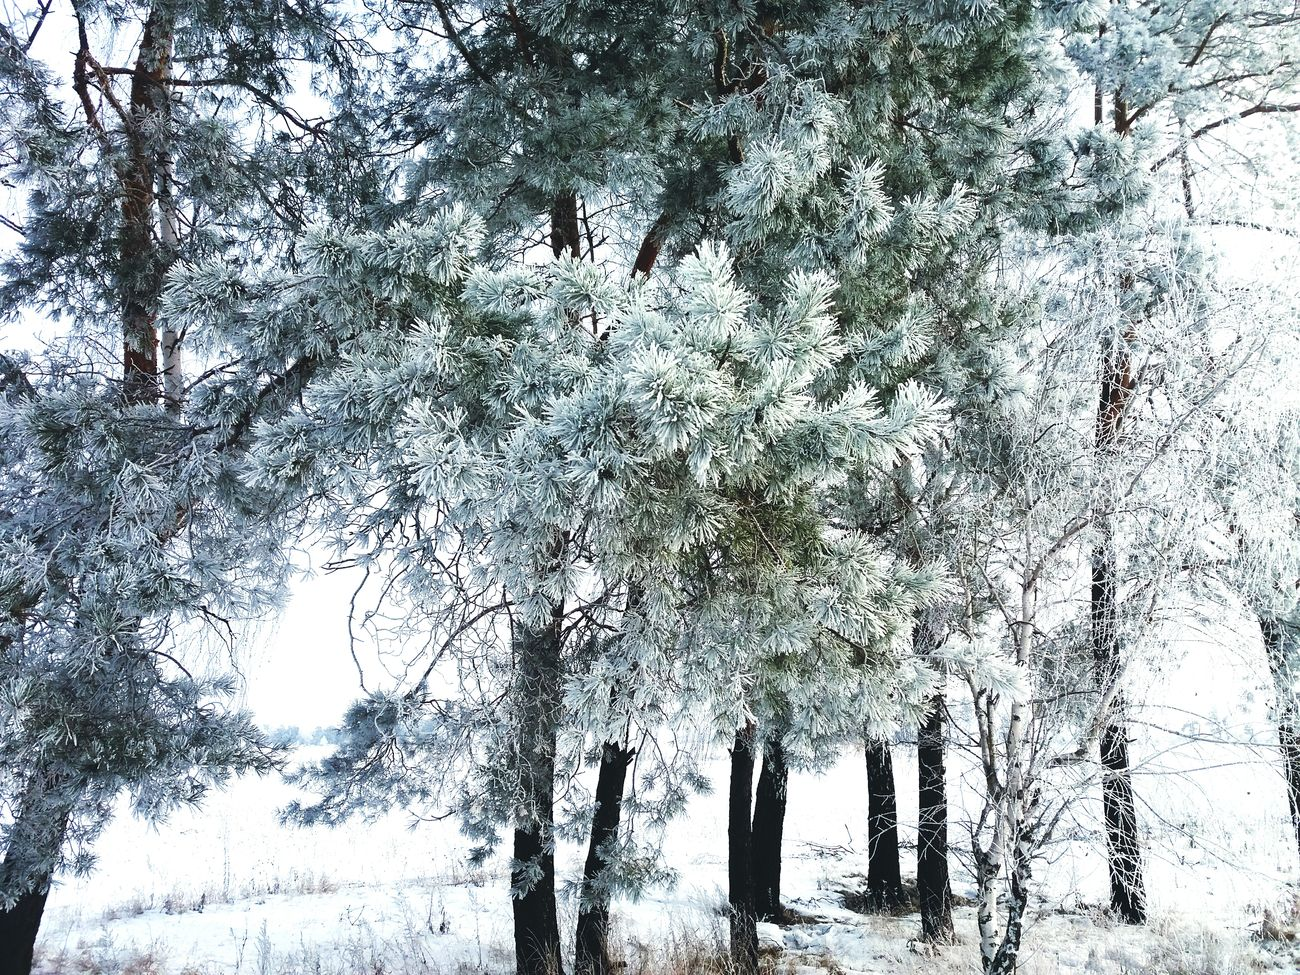 Trees Snow ❄ Phonephotography📱 Morning Landscape White Beauty In Nature No People Cold Temperature Freezingweather Forest Taking Photos